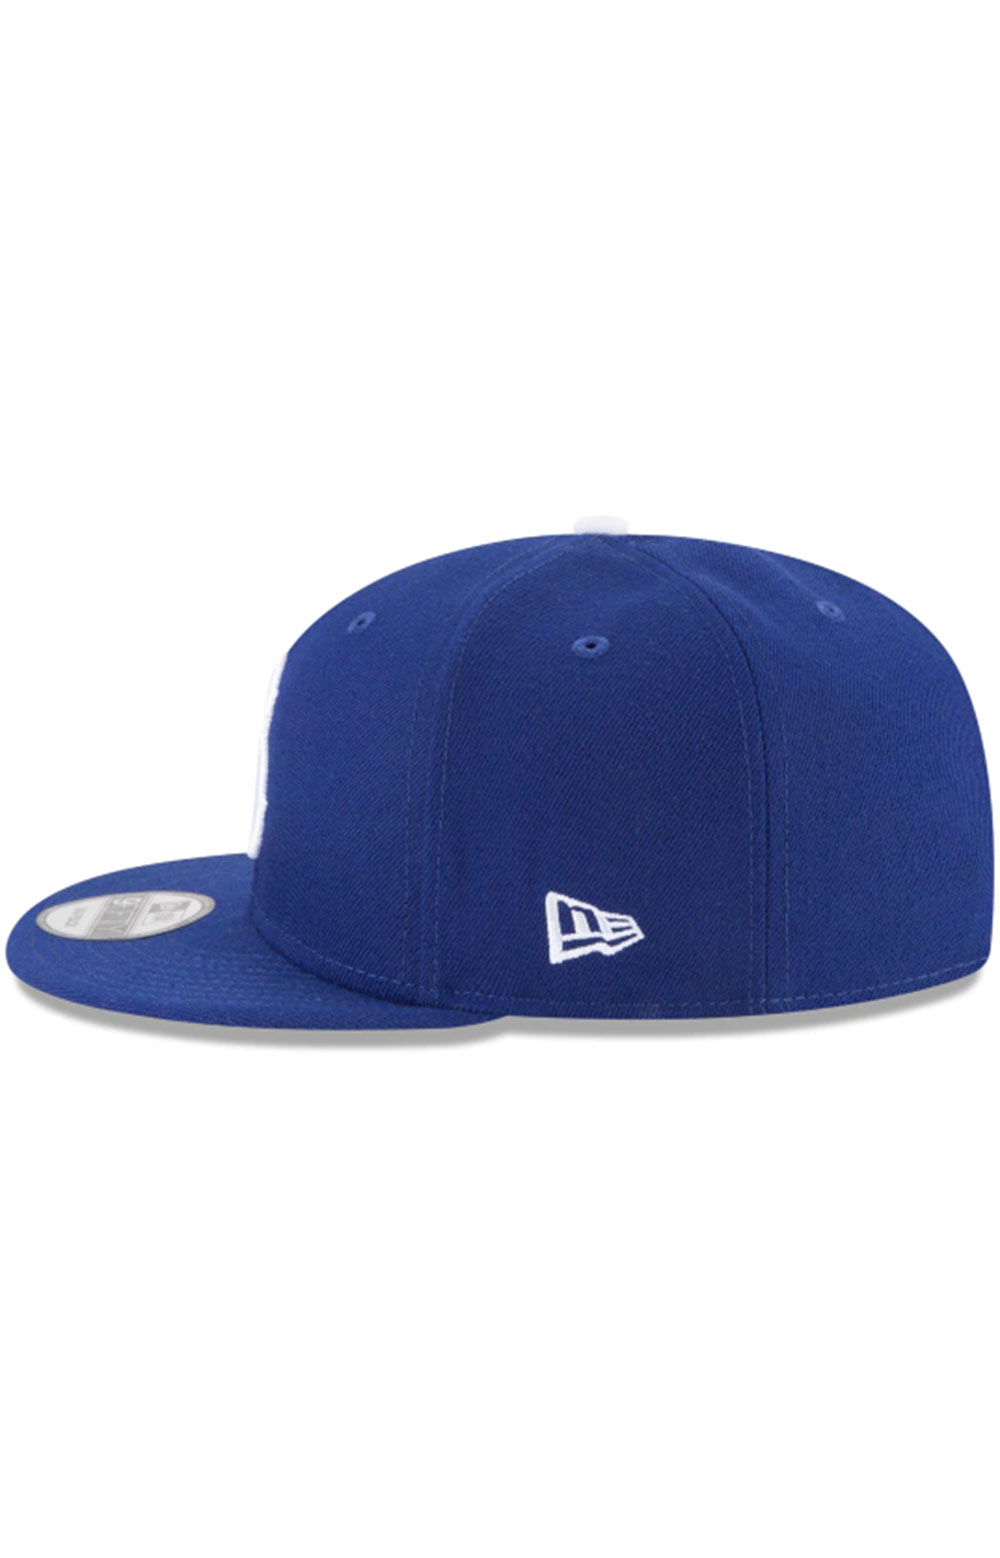 Brooklyn Dodgers Team Color Basic 9Fifty Snap-Back Hat  3